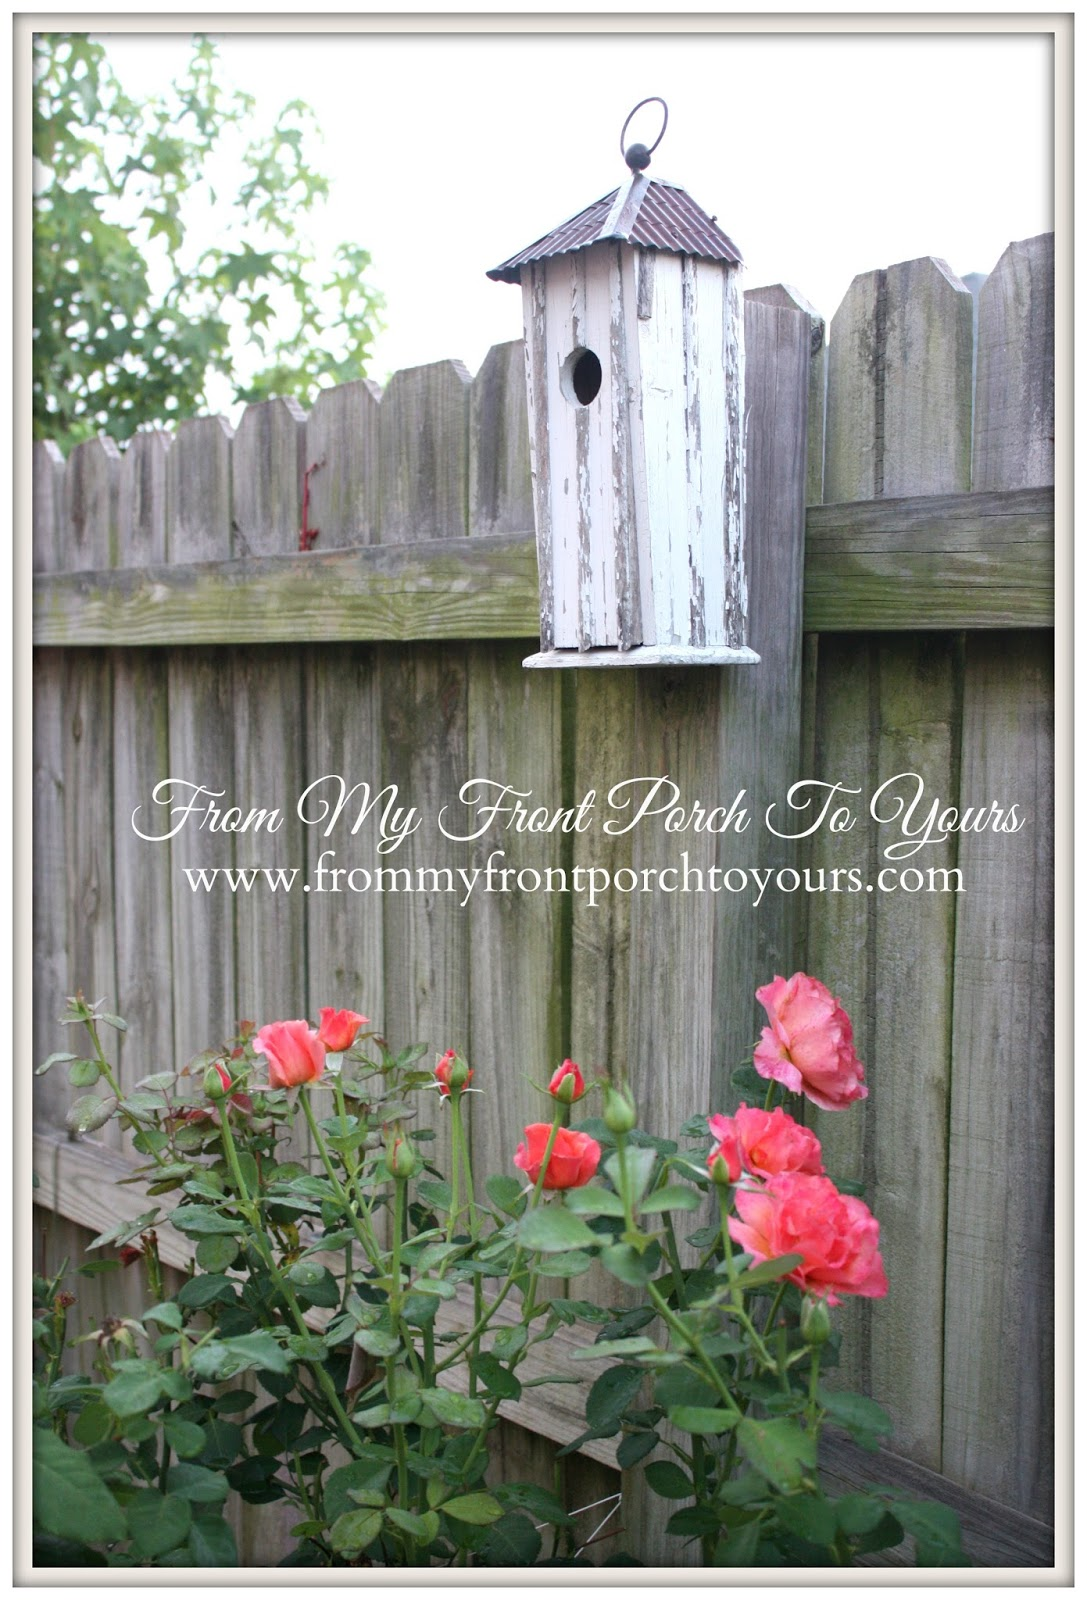 From My Front Porch To Yours- Flower Garden